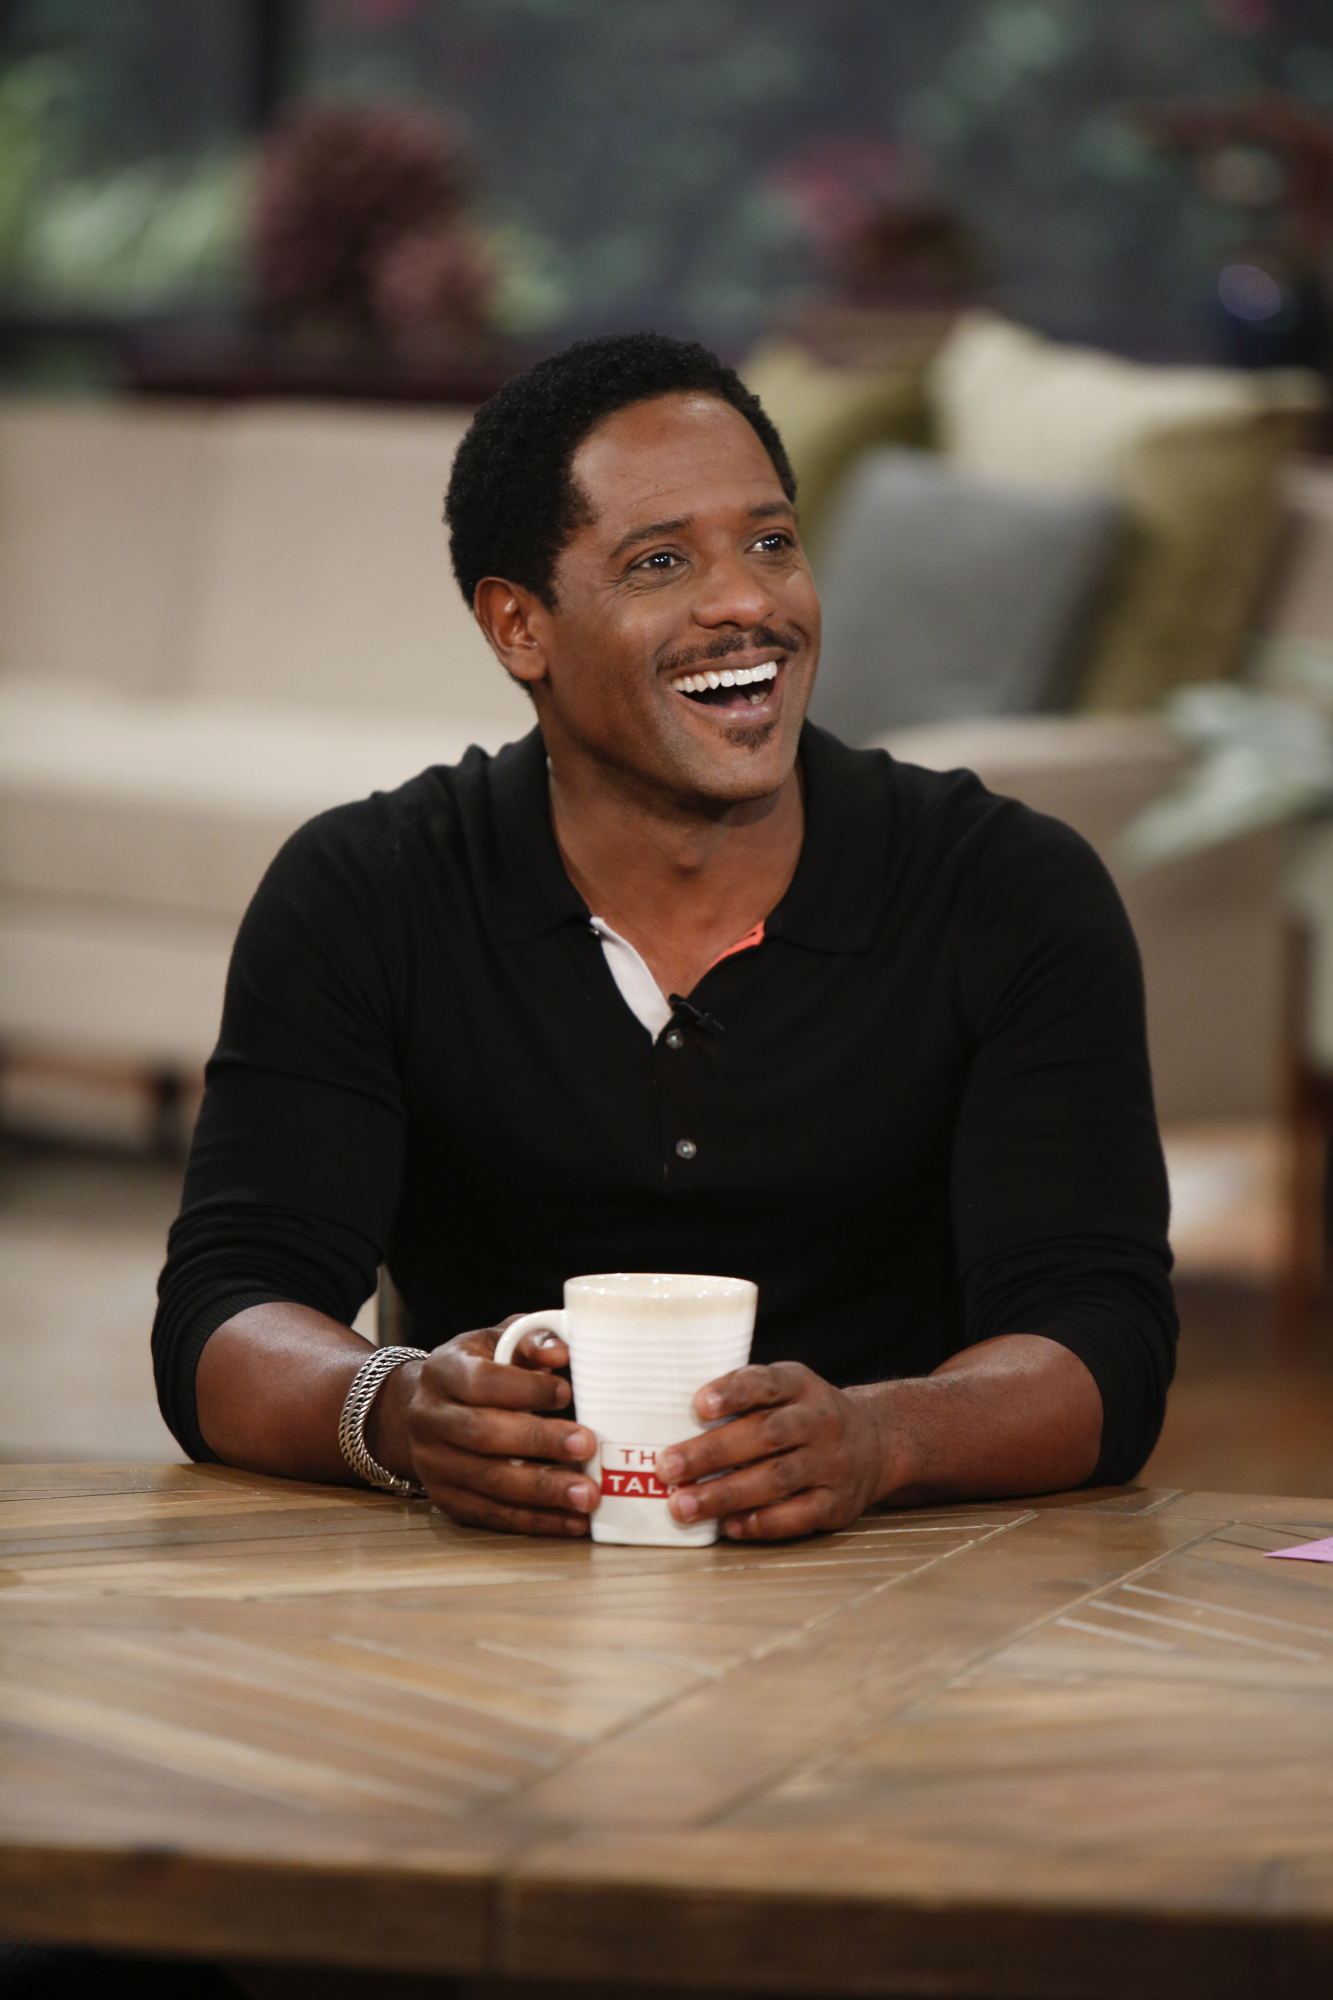 5. Blair Underwood - Actor & Director